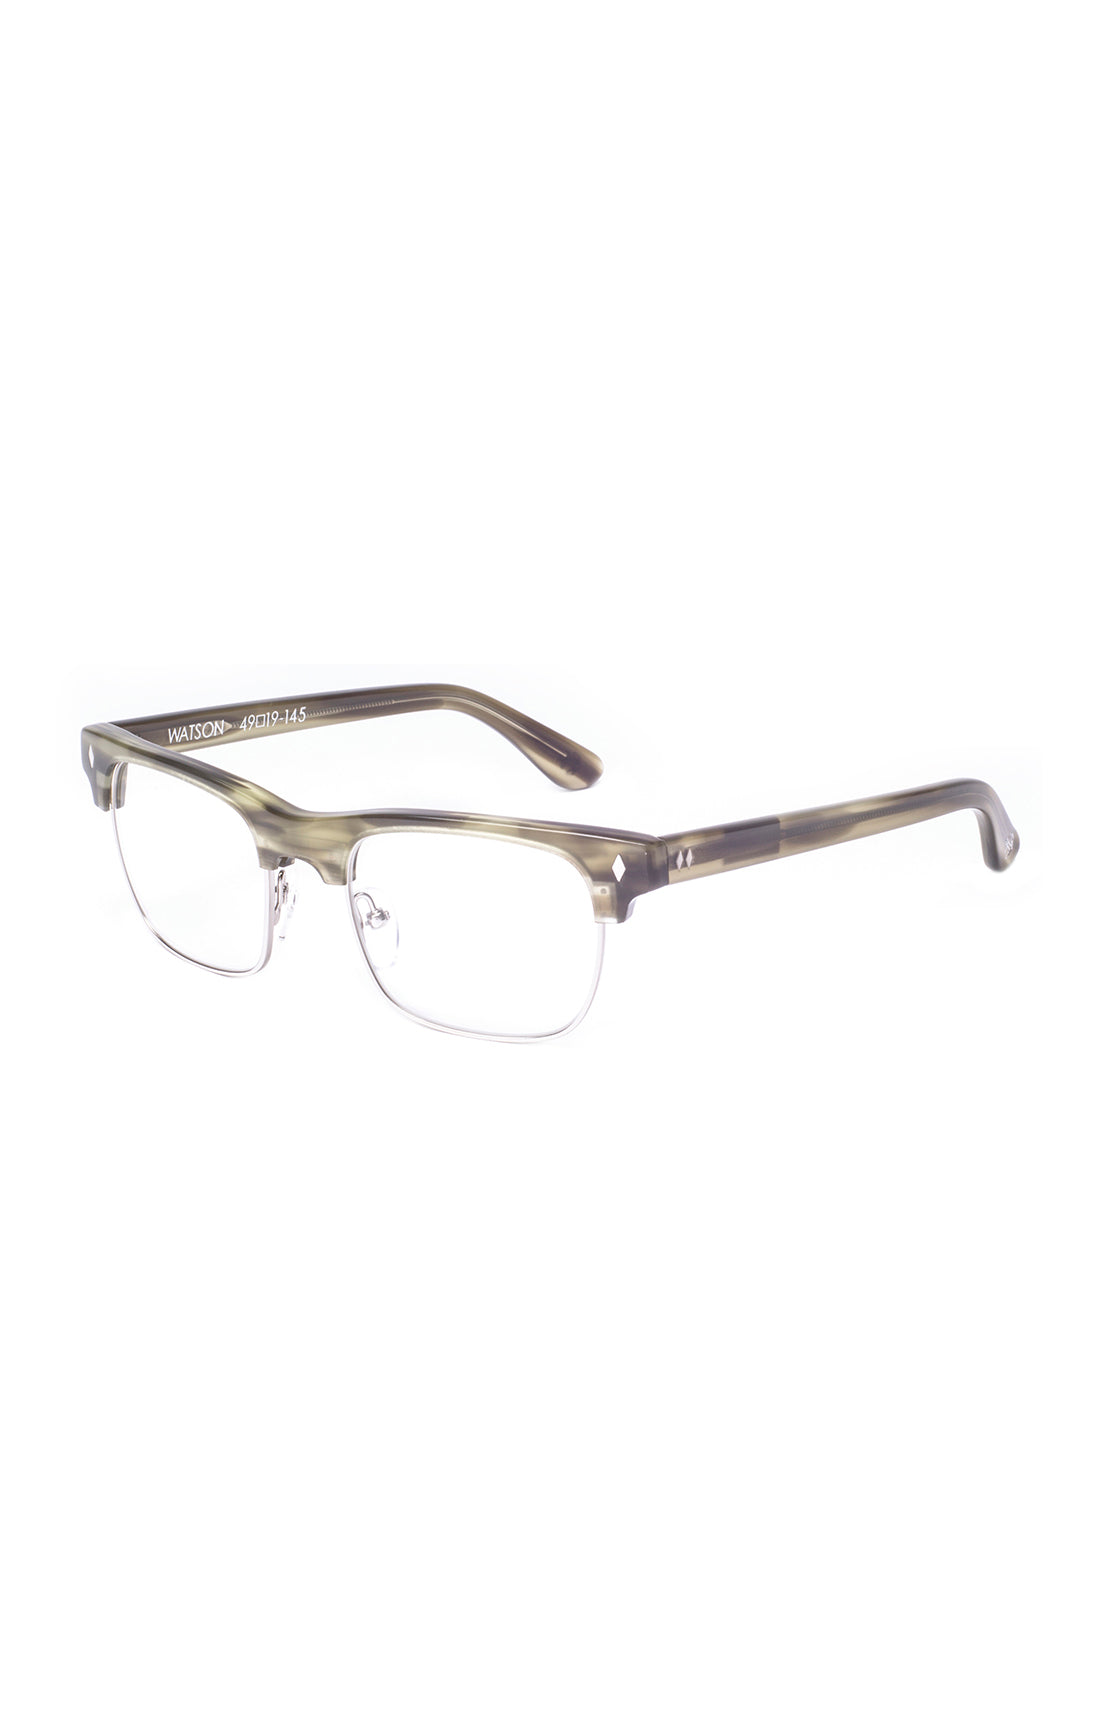 The WATSON Sunglasses - Green/Horn Frames w/ Clear Lenses - ON SALE!